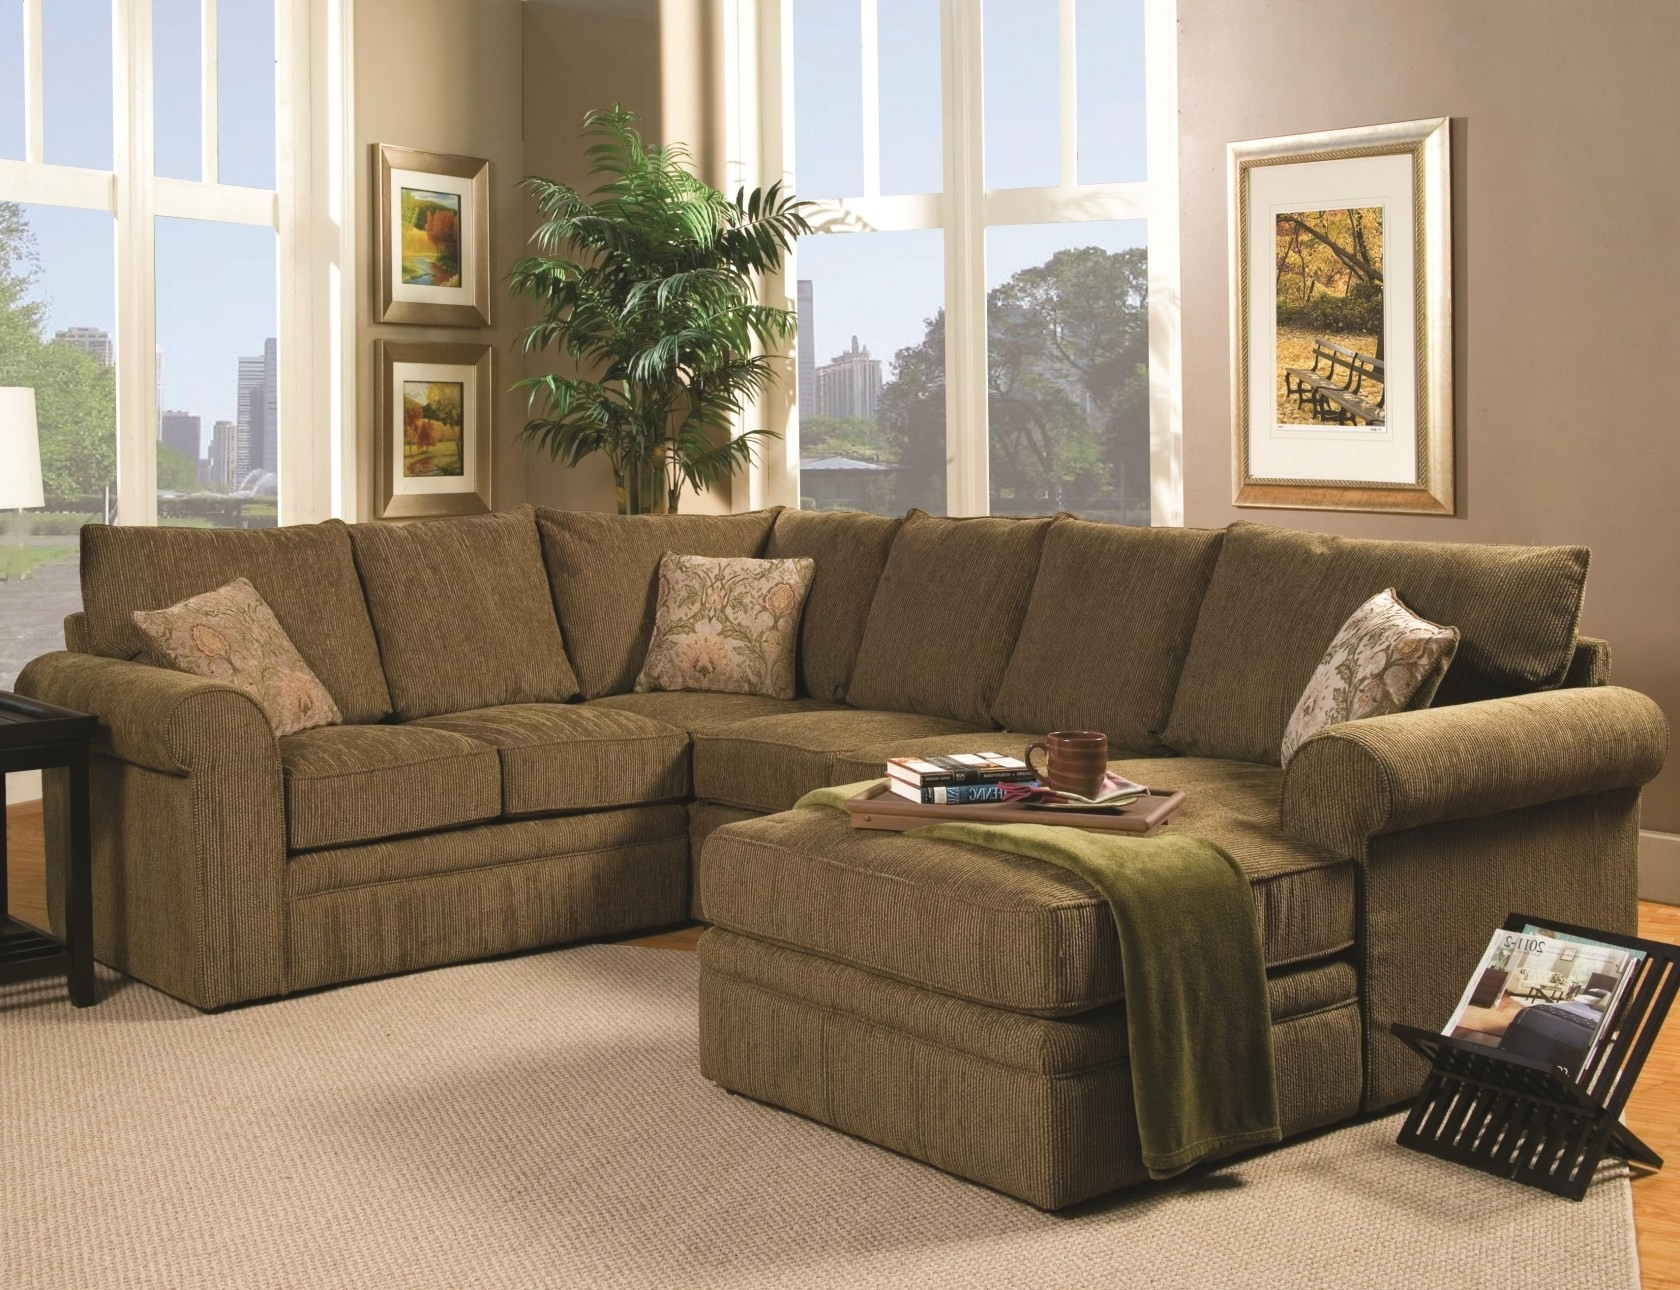 Big U Shaped Couches Intended For Fashionable Perfect U Shaped Sectional Sofa 77 With Additional Living Room (View 18 of 20)